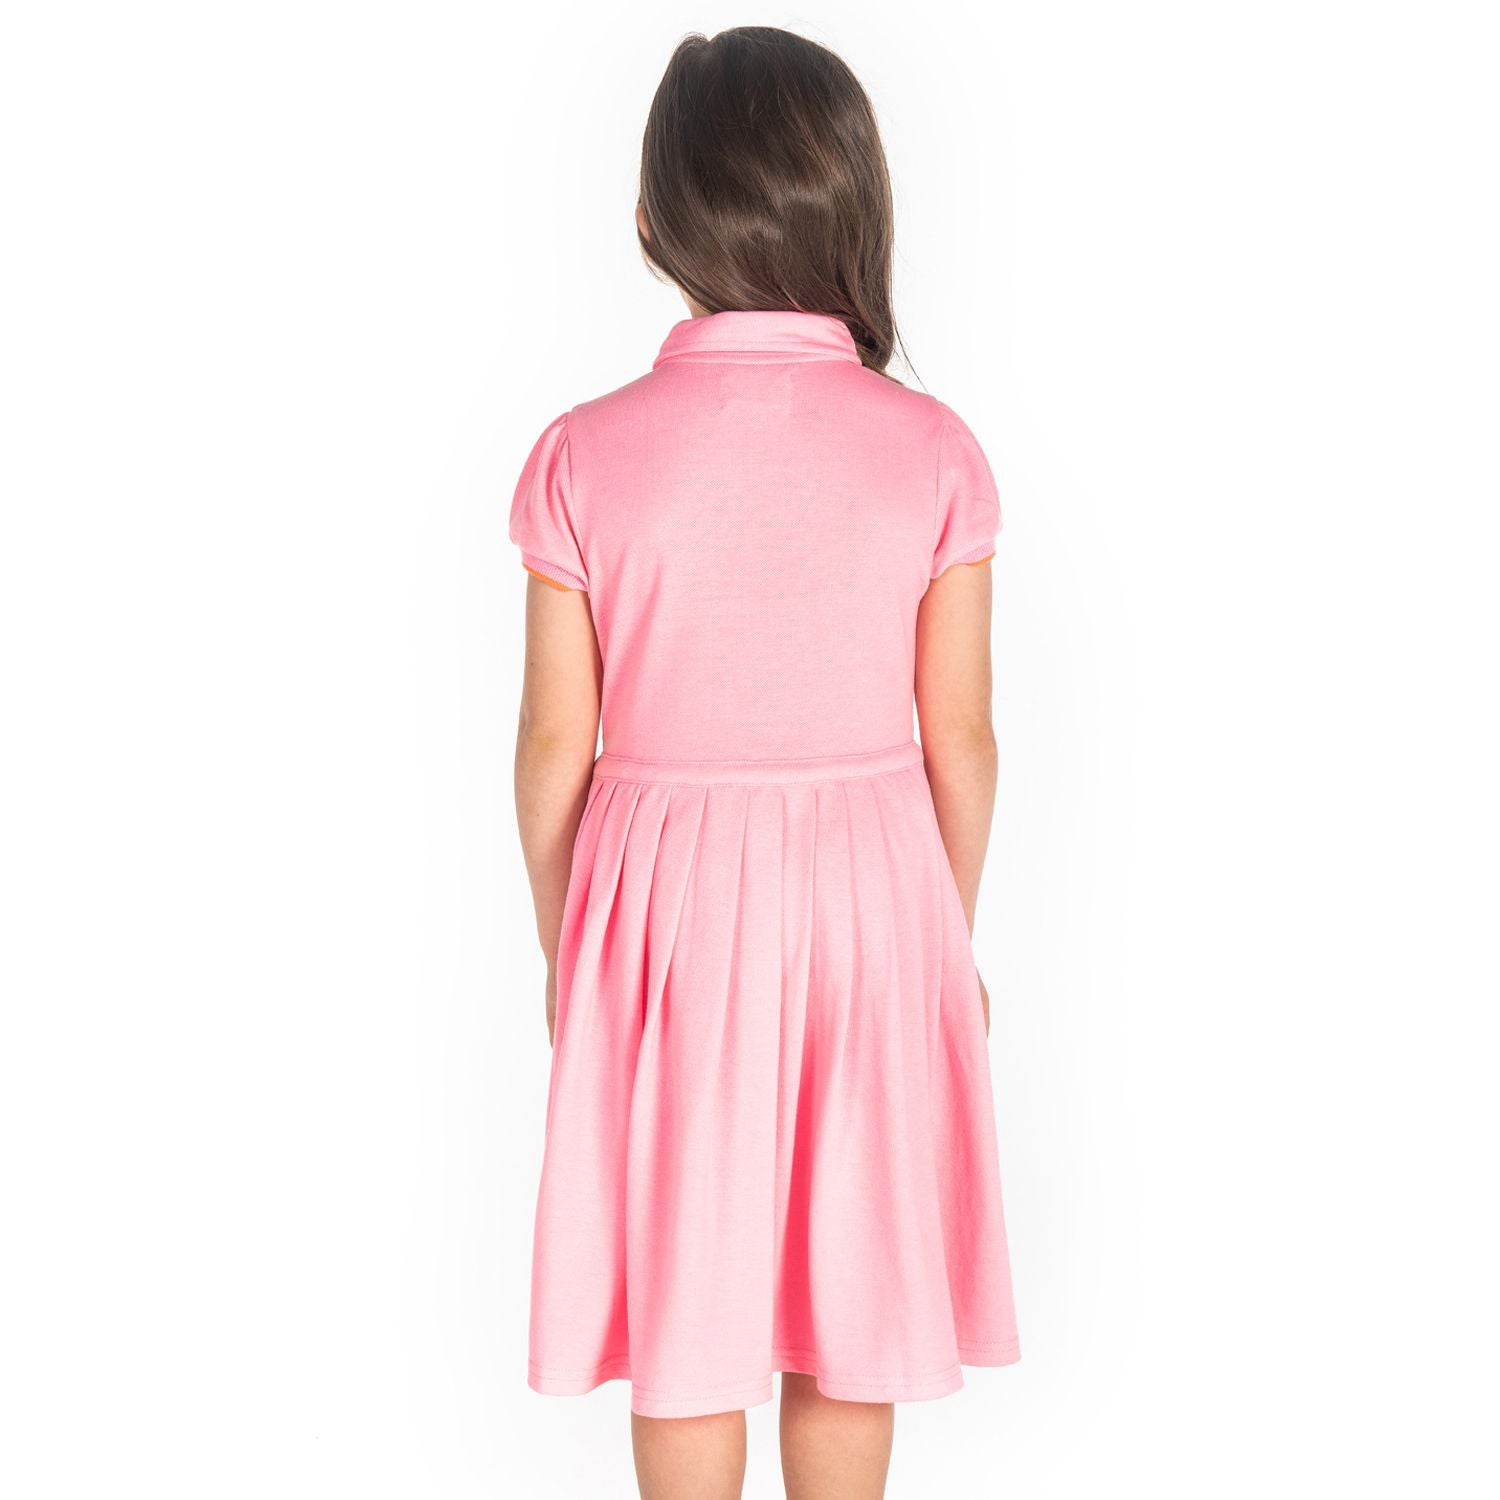 Beads Polo Dress for Girls